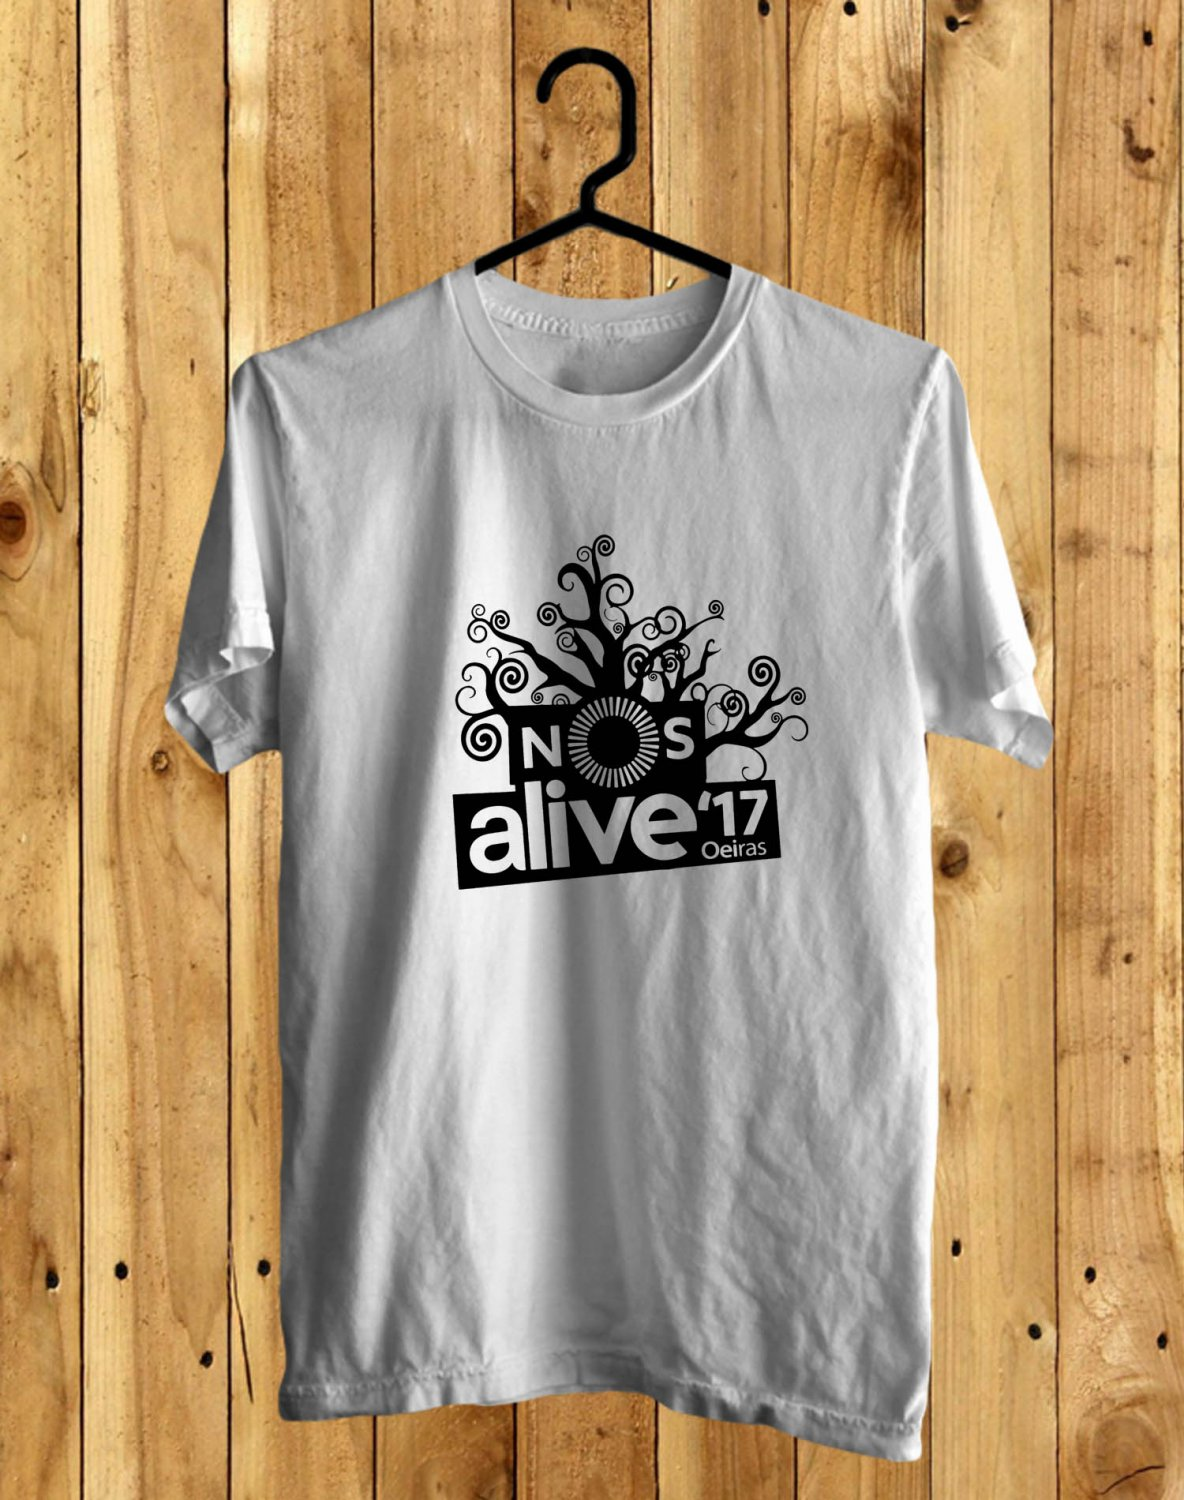 NOS ALIVE Portugal Logo White Tee's Front Side by Complexart